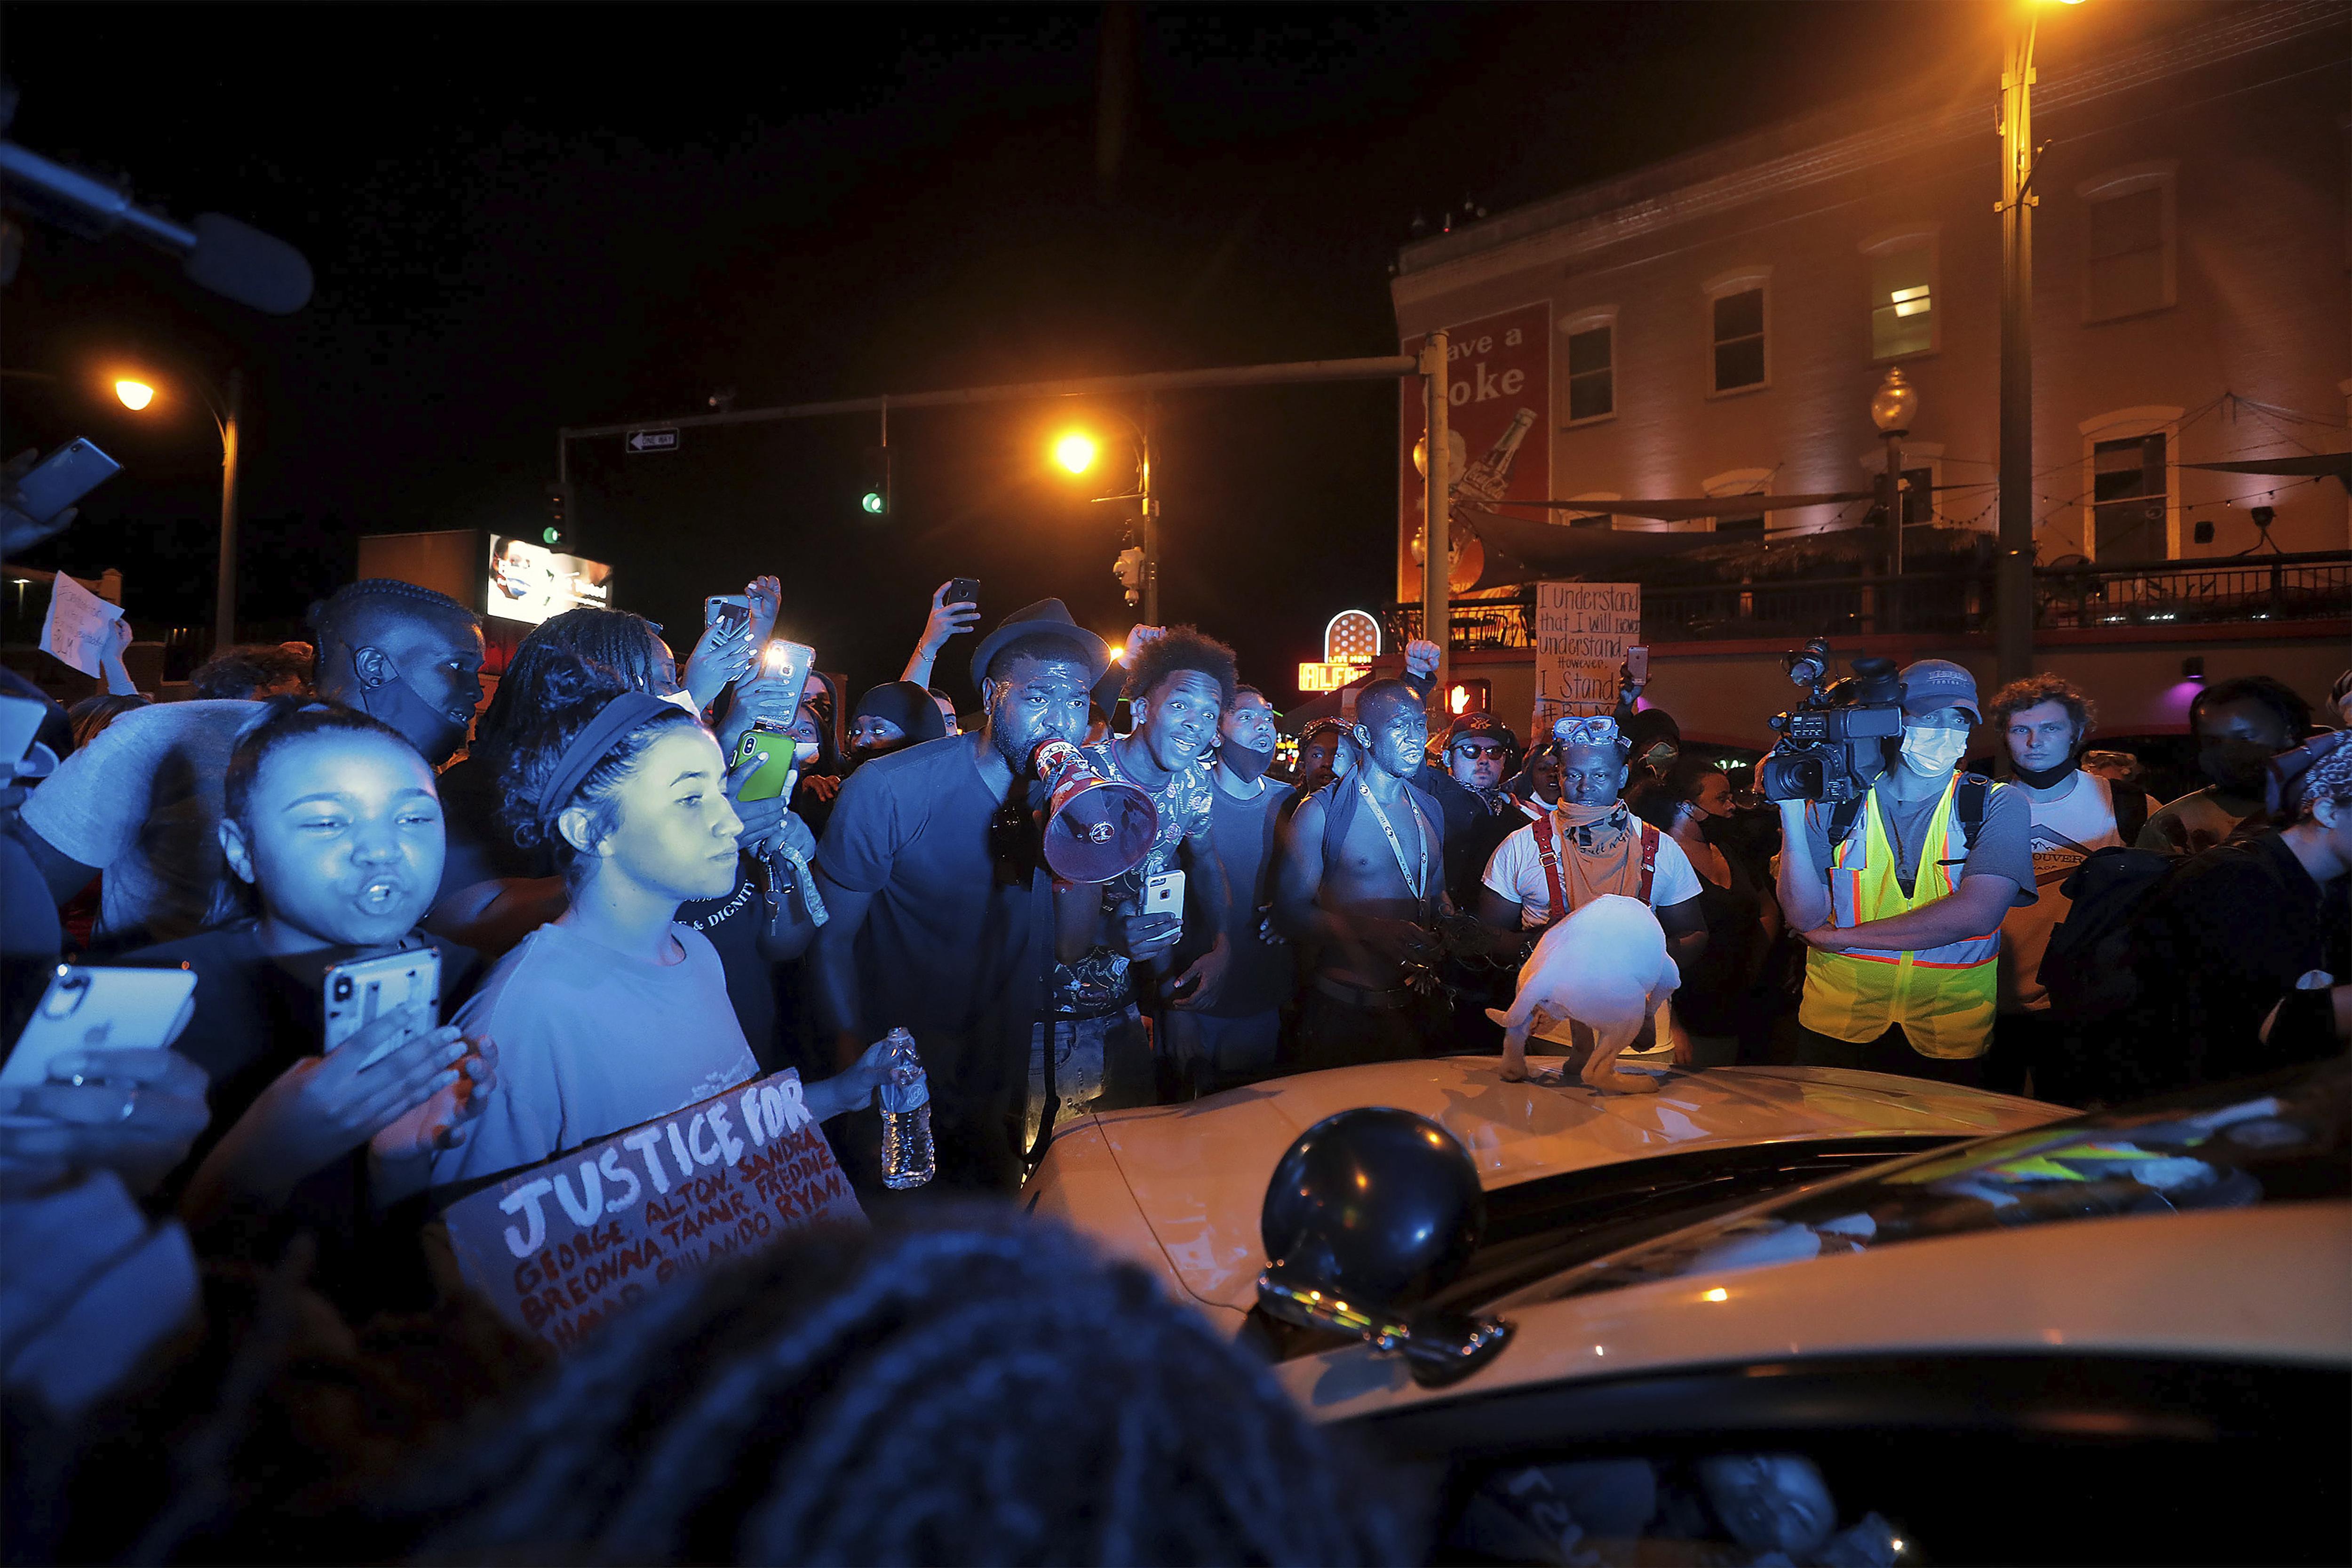 Protestors confront a police officer in his car in Memphis, Tennessee during a protest over the death of George Floyd May 31, 2020. (Patrick Lantrip/Daily Memphian via AP)